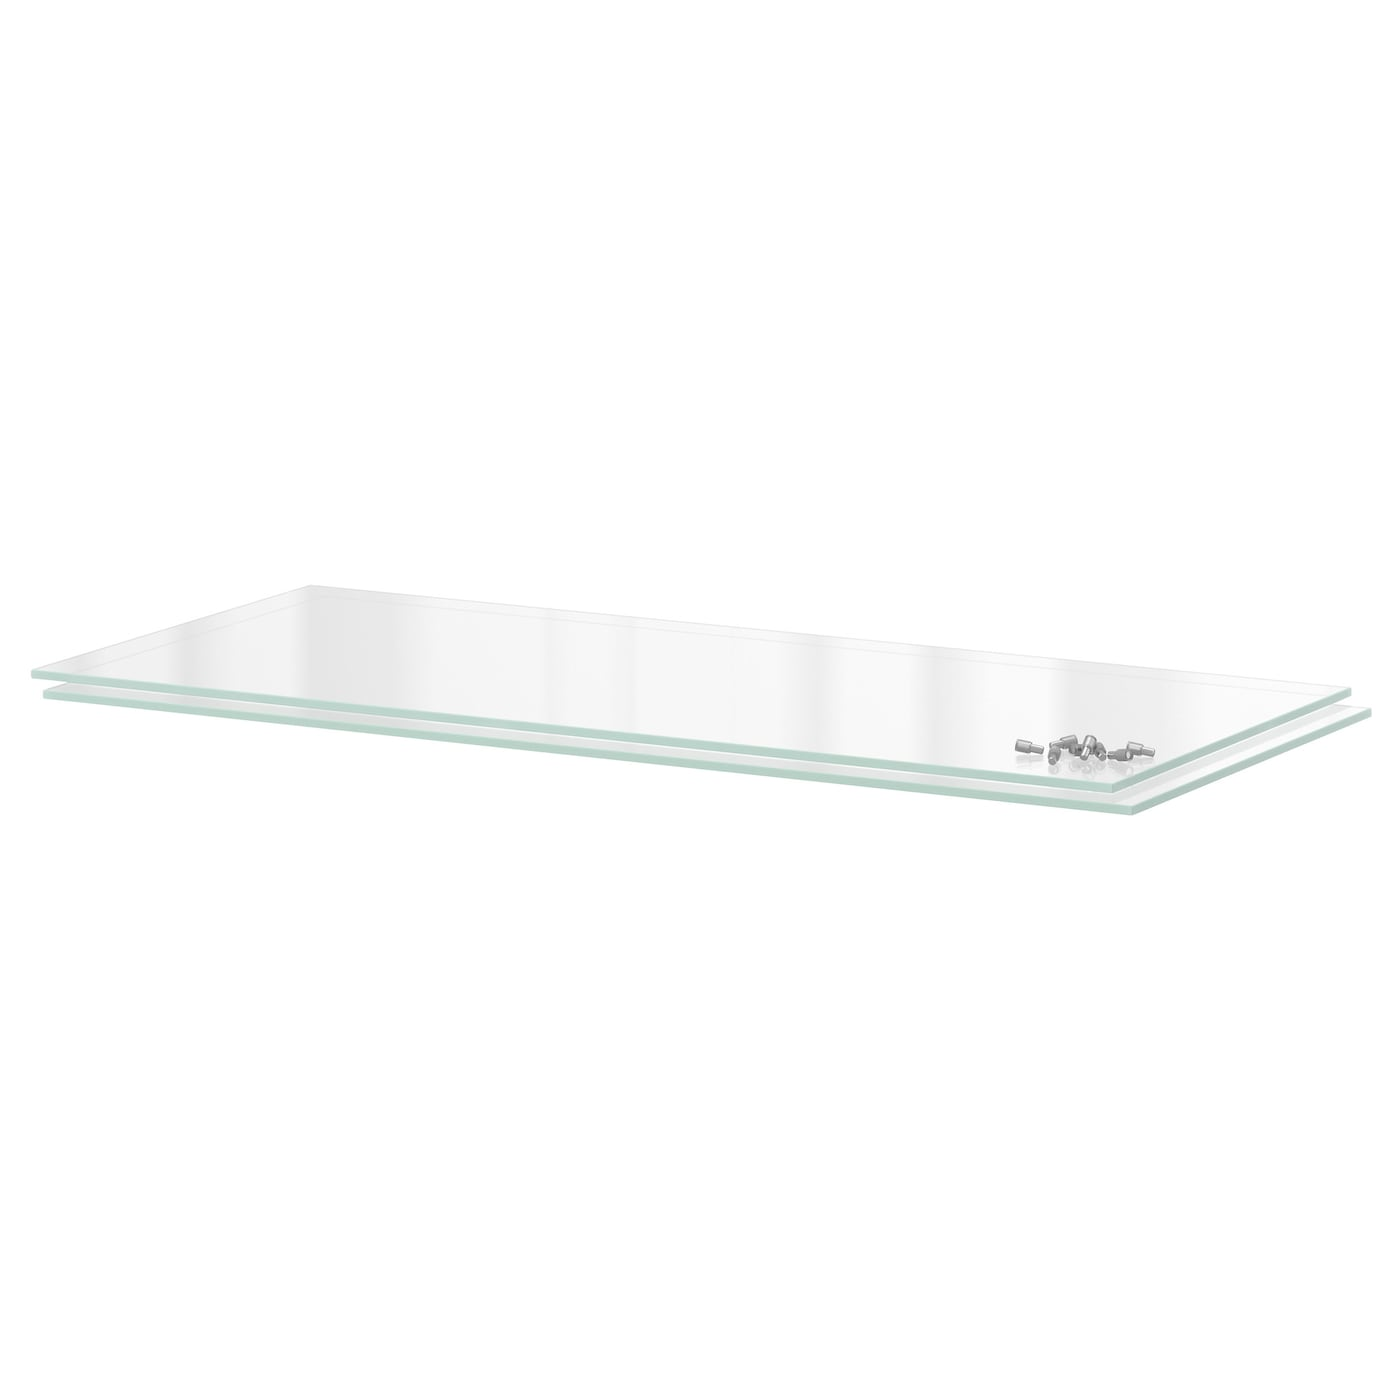 IKEA UTRUSTA shelf The tempered glass surface is easy to clean.